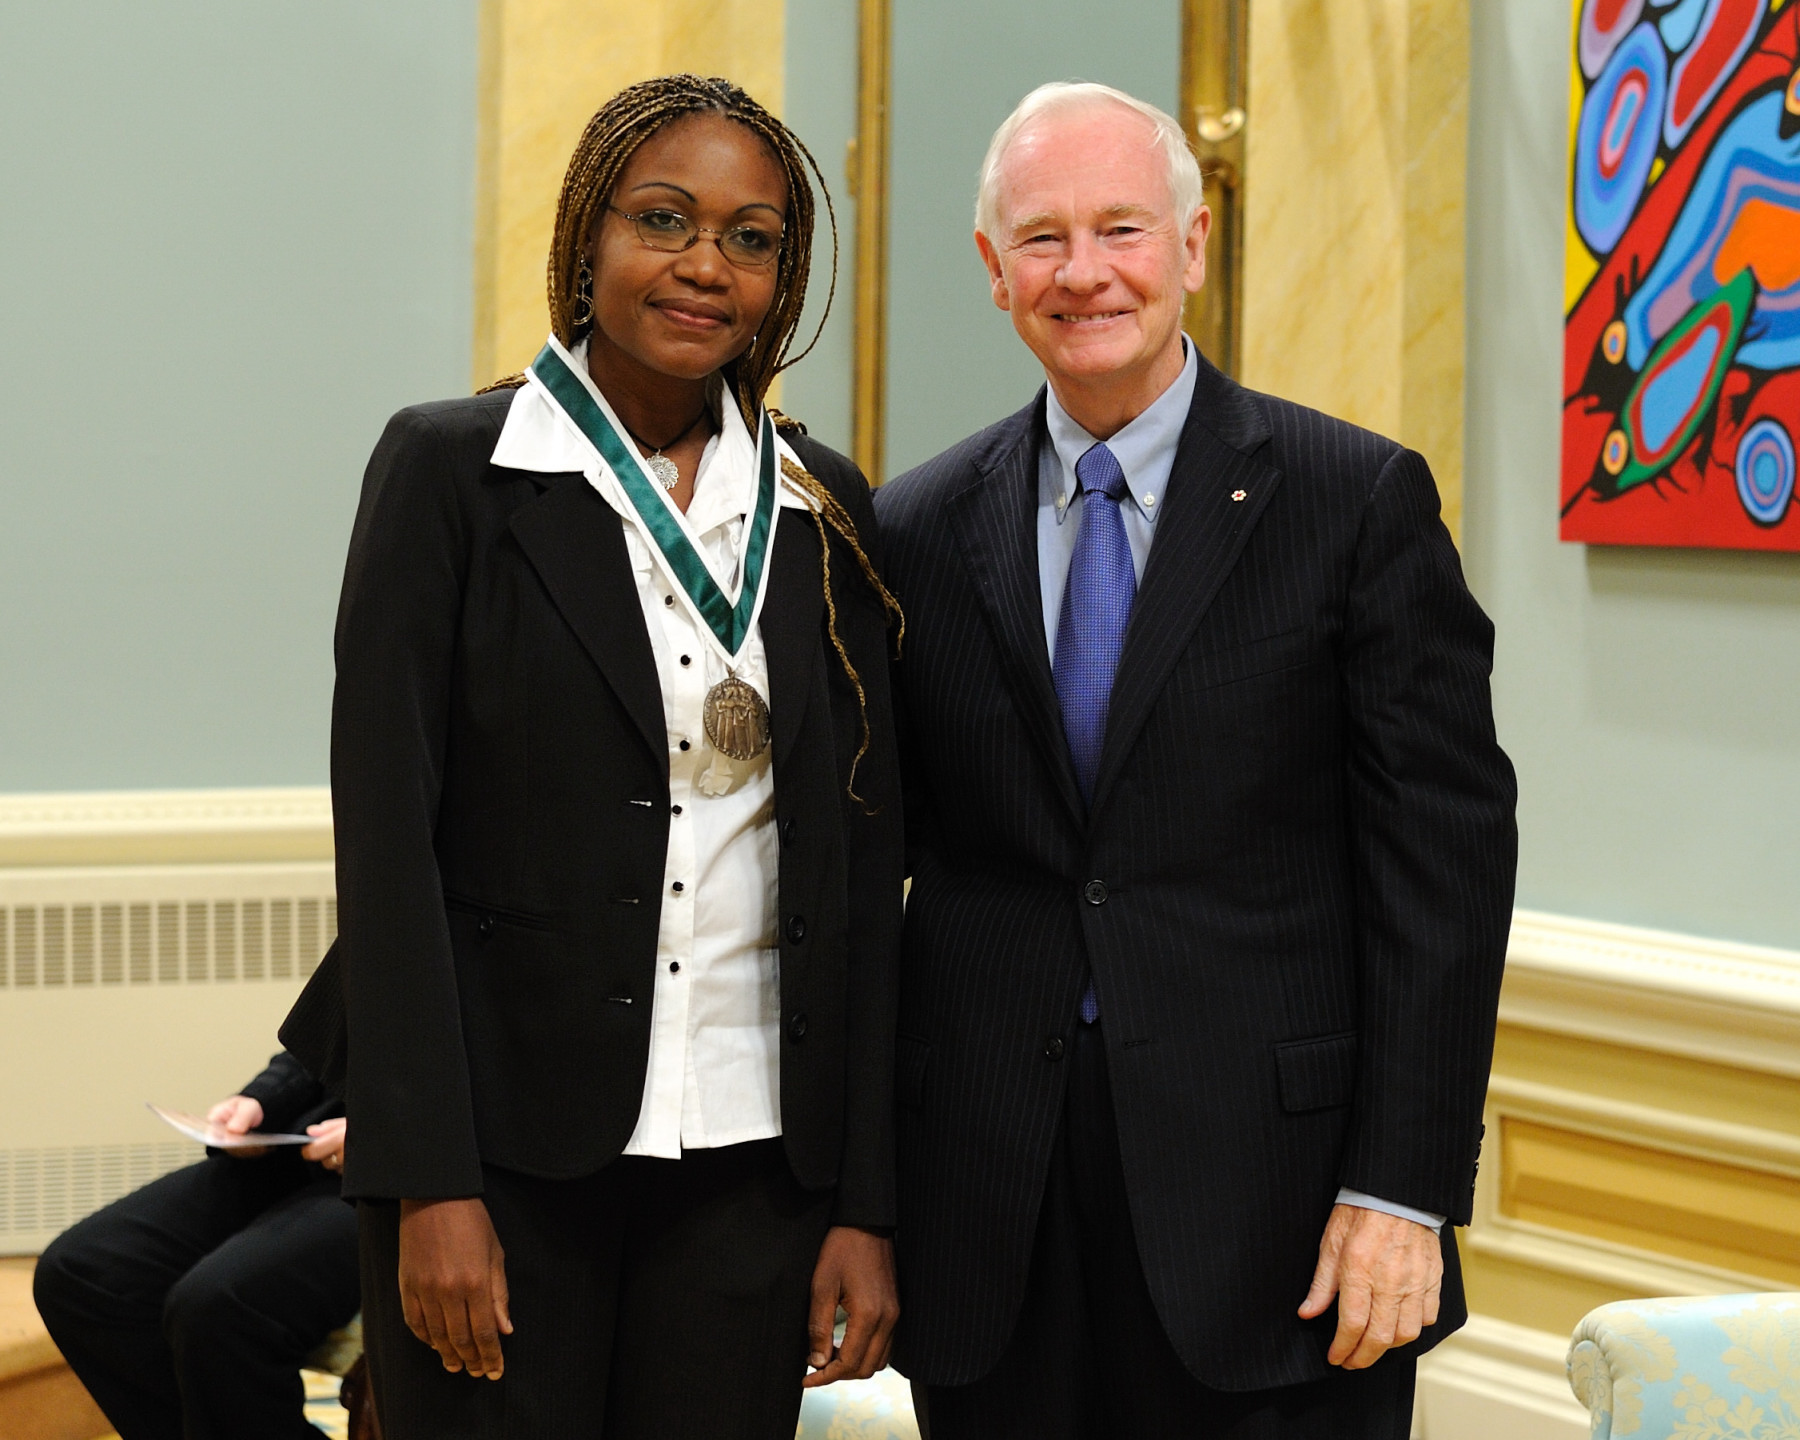 Ms. Kerline Joseph from Delson, Quebec, received the 2010 Governor General's Awards in Commemoration of the Persons Case. Ms. Joseph created the organization Voix sans frontières (Voices without borders) of which she is president. The organization addresses the isolation of immigrant women in Canada, helps them with skills development, and provides them with information about their rights and responsibilities in this country.